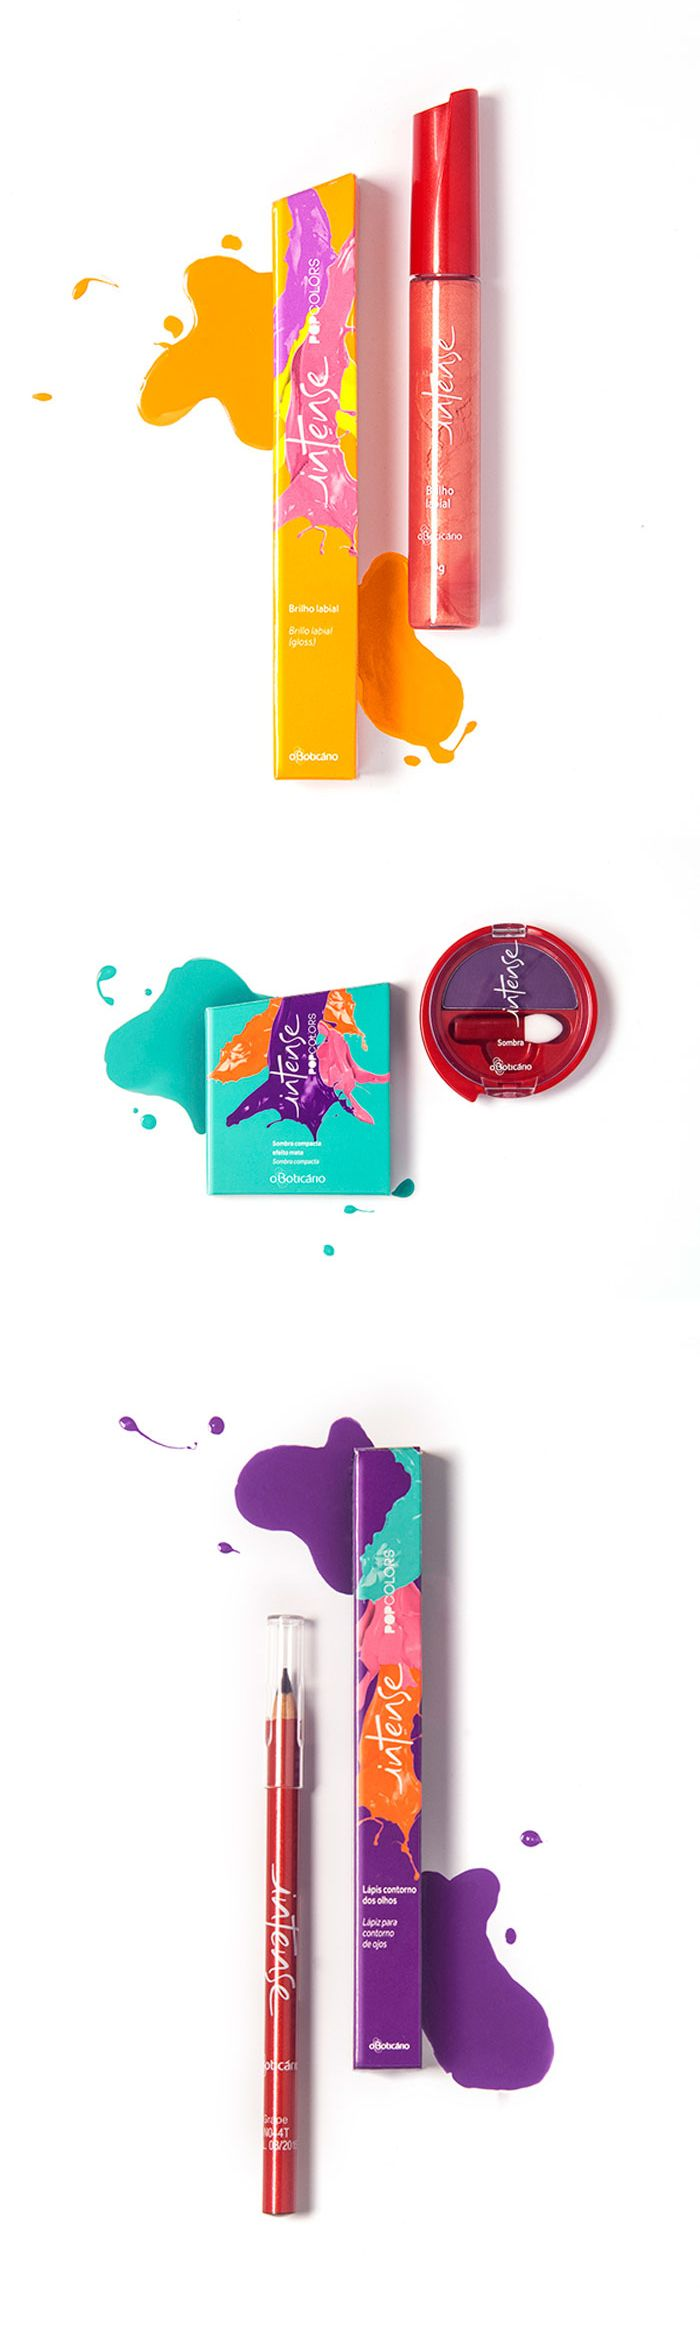 "Beautiful makeup box art! The colors are eye catching and go great together. Also, the piece as a whole has a really neat ""pop out"" effect with the matching nail polish and boxes."